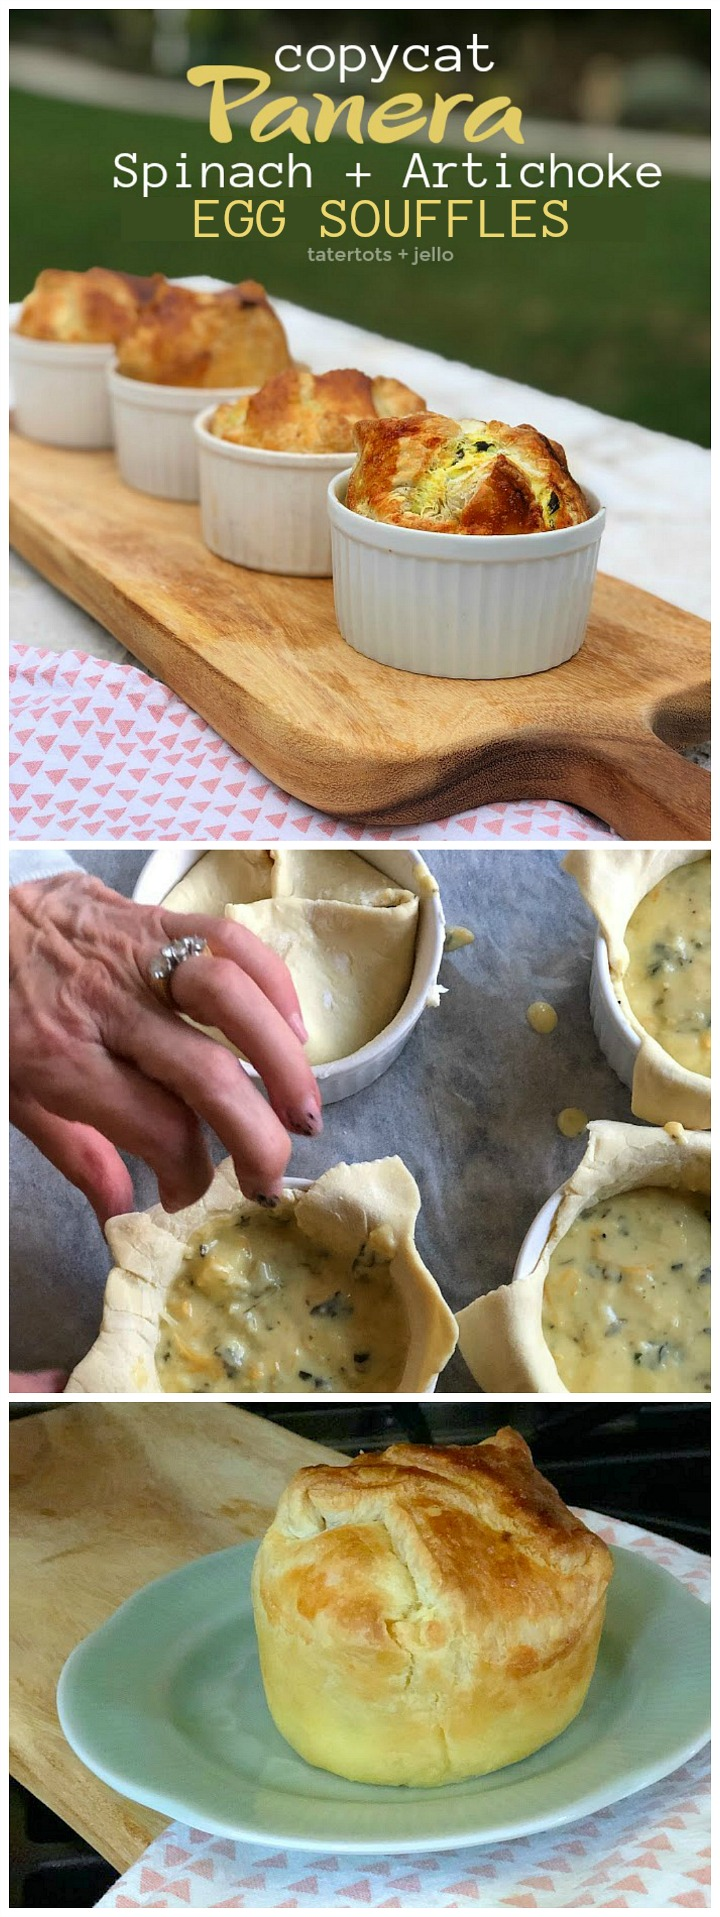 Copycat Panera Spinach and Artichoke Egg Soufflés. Fluffy eggs in a delicious spinach artichoke batter baked in layers of light flakey crust will impress weekend guests and the best part is they are SO easy to make!